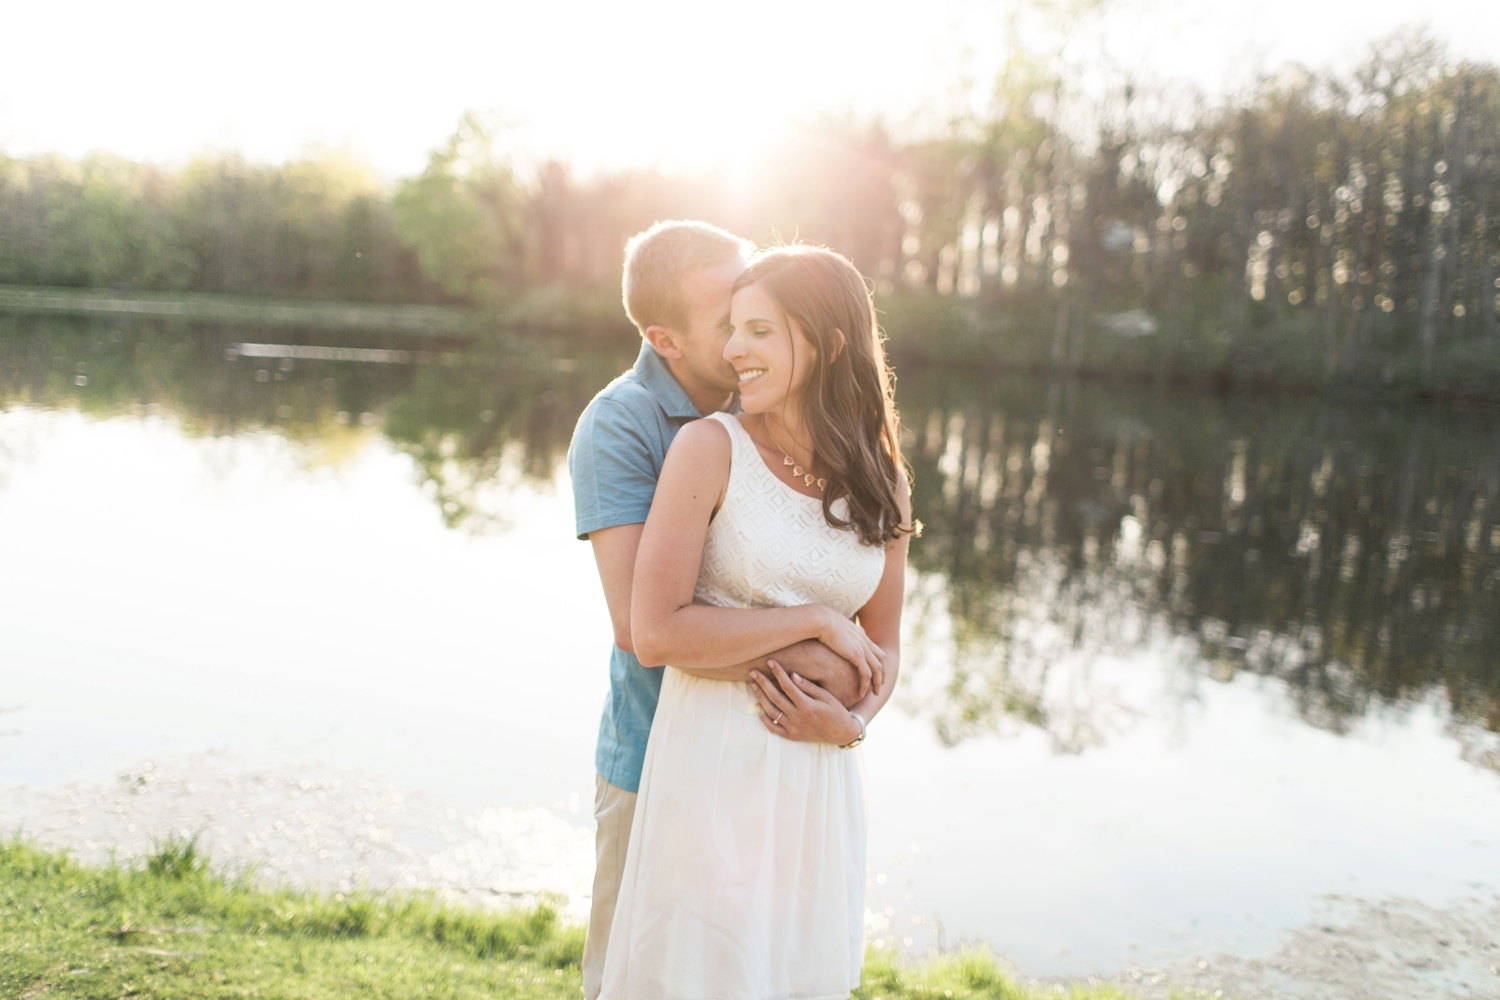 indianapolis_indiana_wedding_photographer_eagle_creek_engagement_chloe_luka_photography_6373.jpg